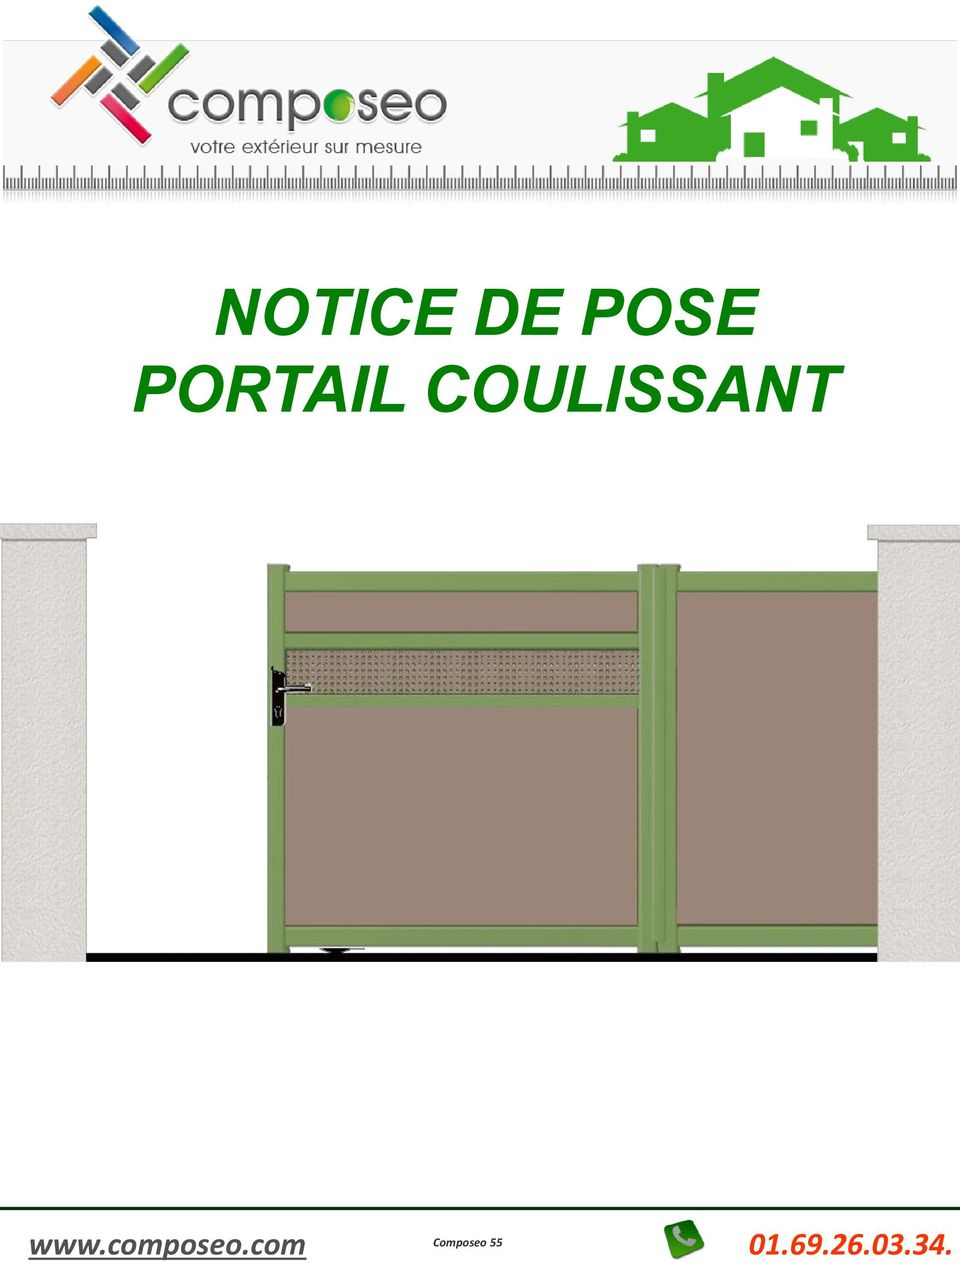 notice de pose portail coulissant pdf. Black Bedroom Furniture Sets. Home Design Ideas